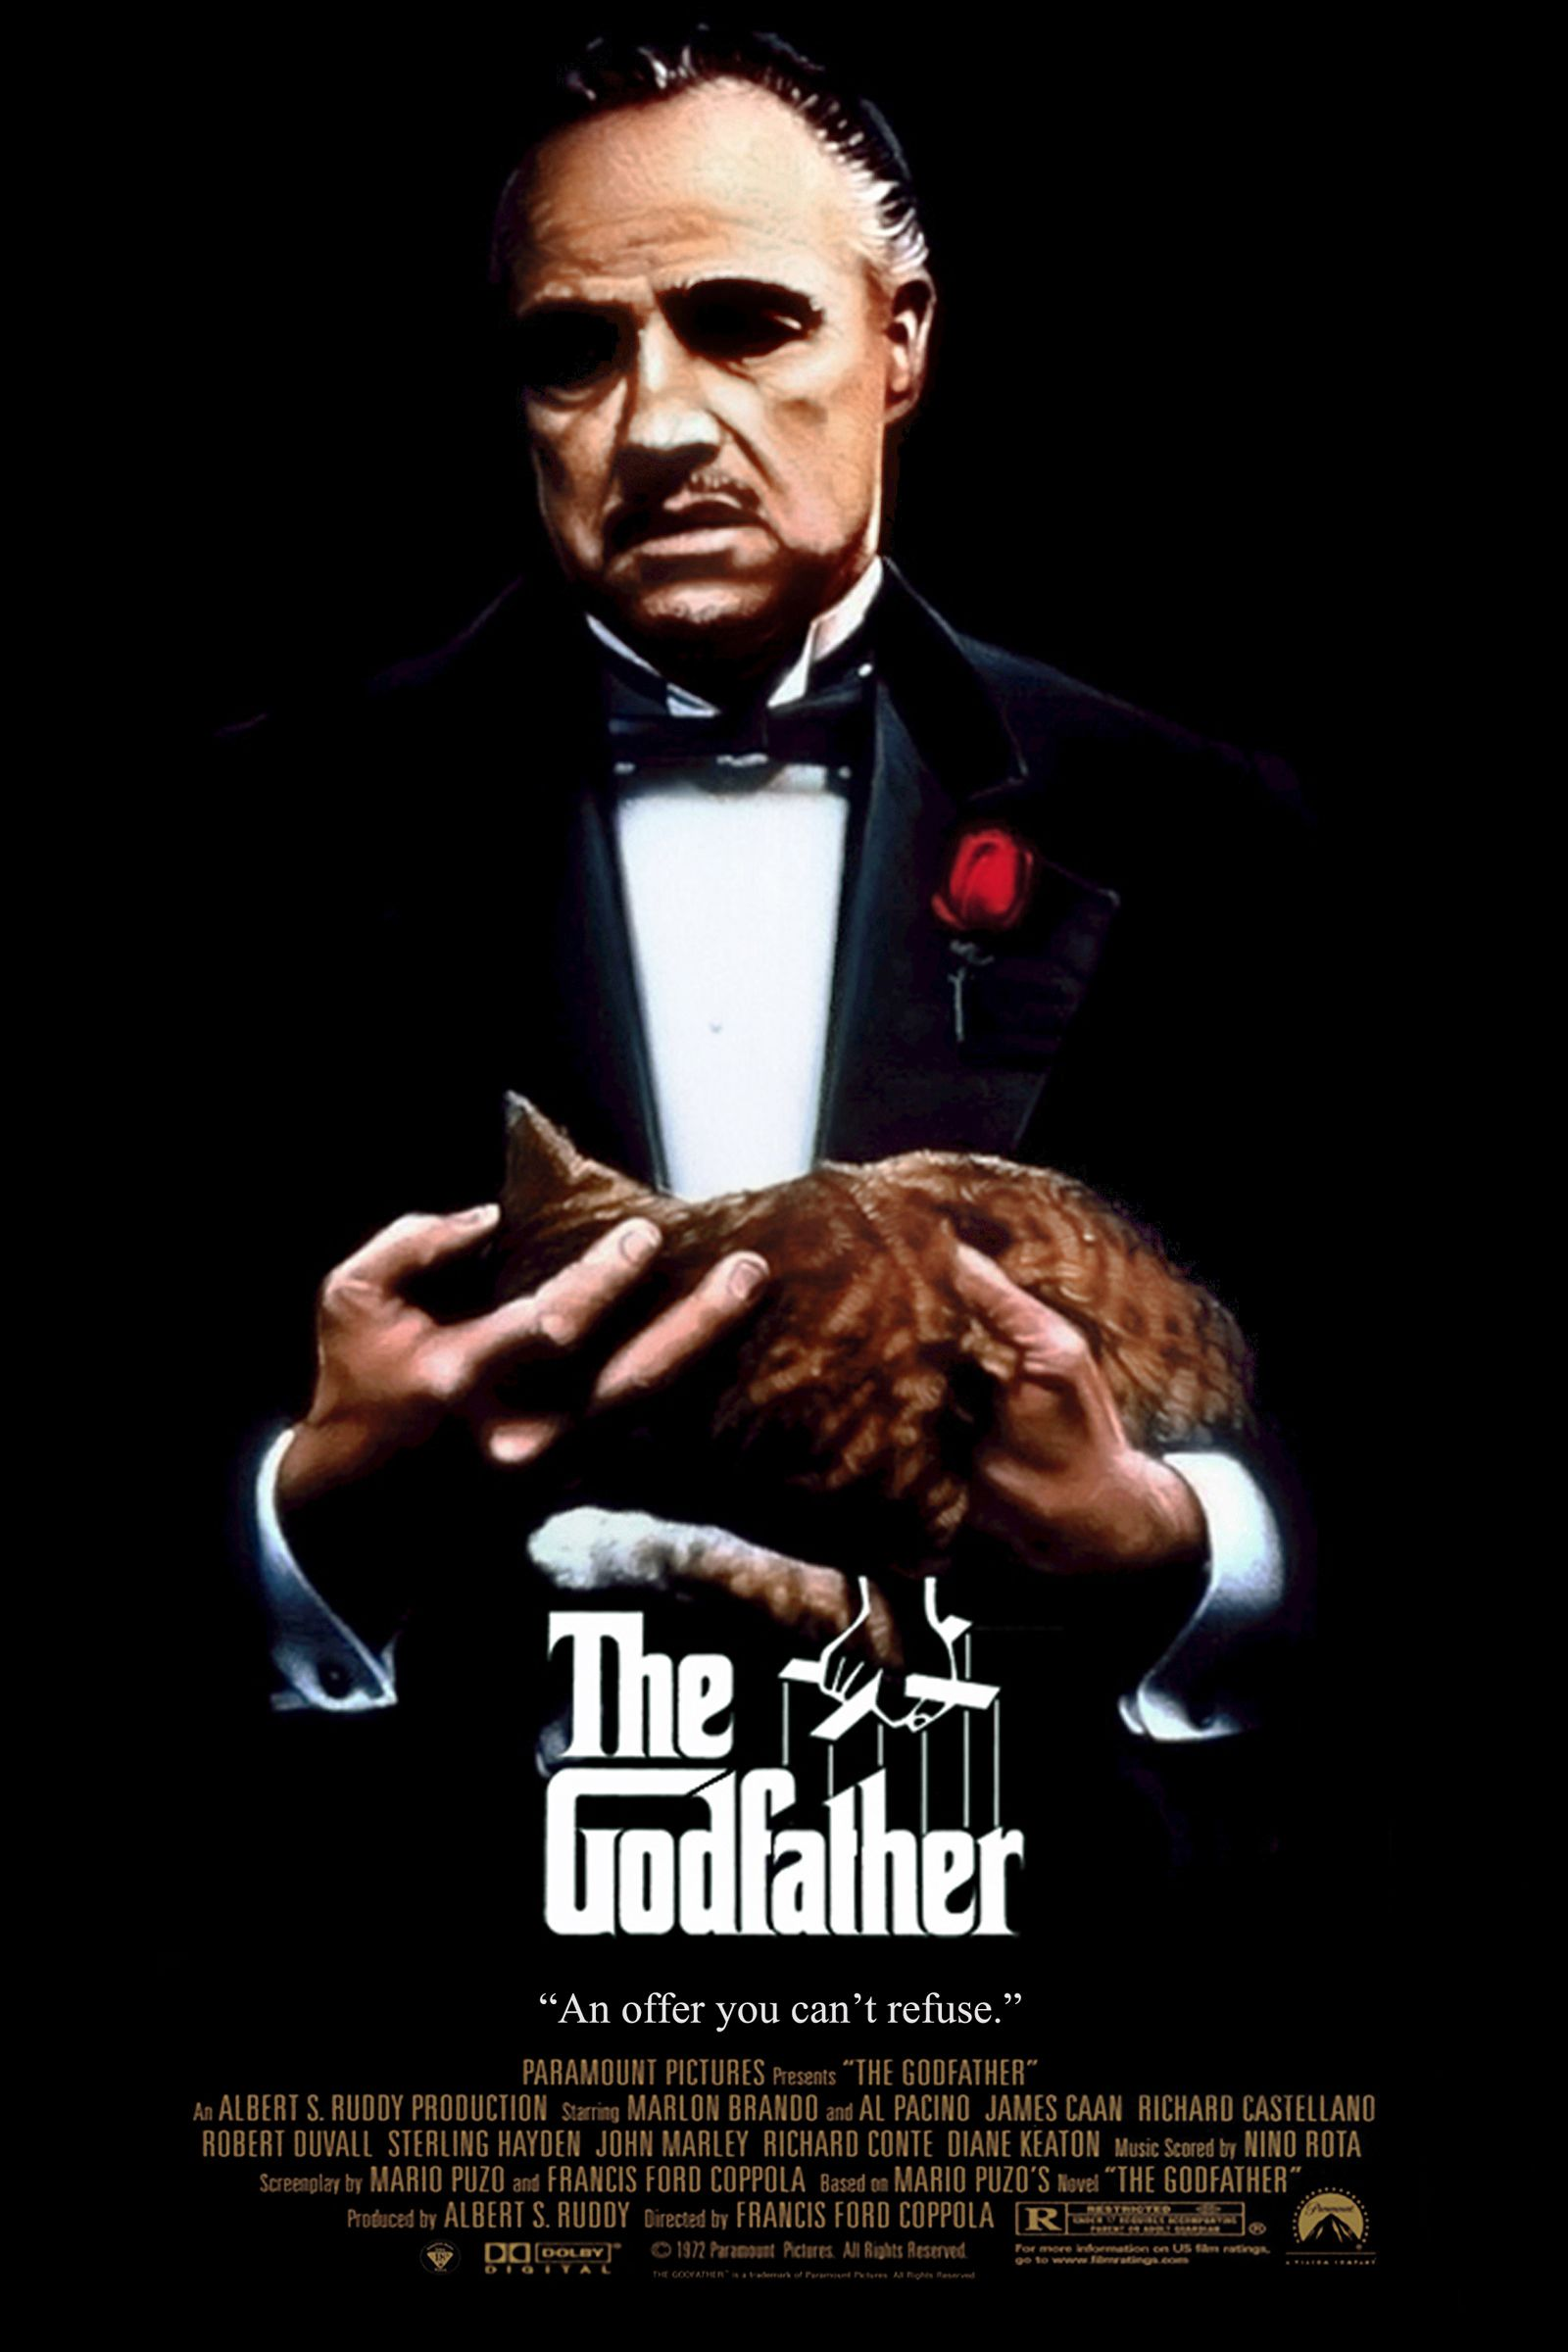 The Godfather The Godfather Godfather Movie The Godfather Full